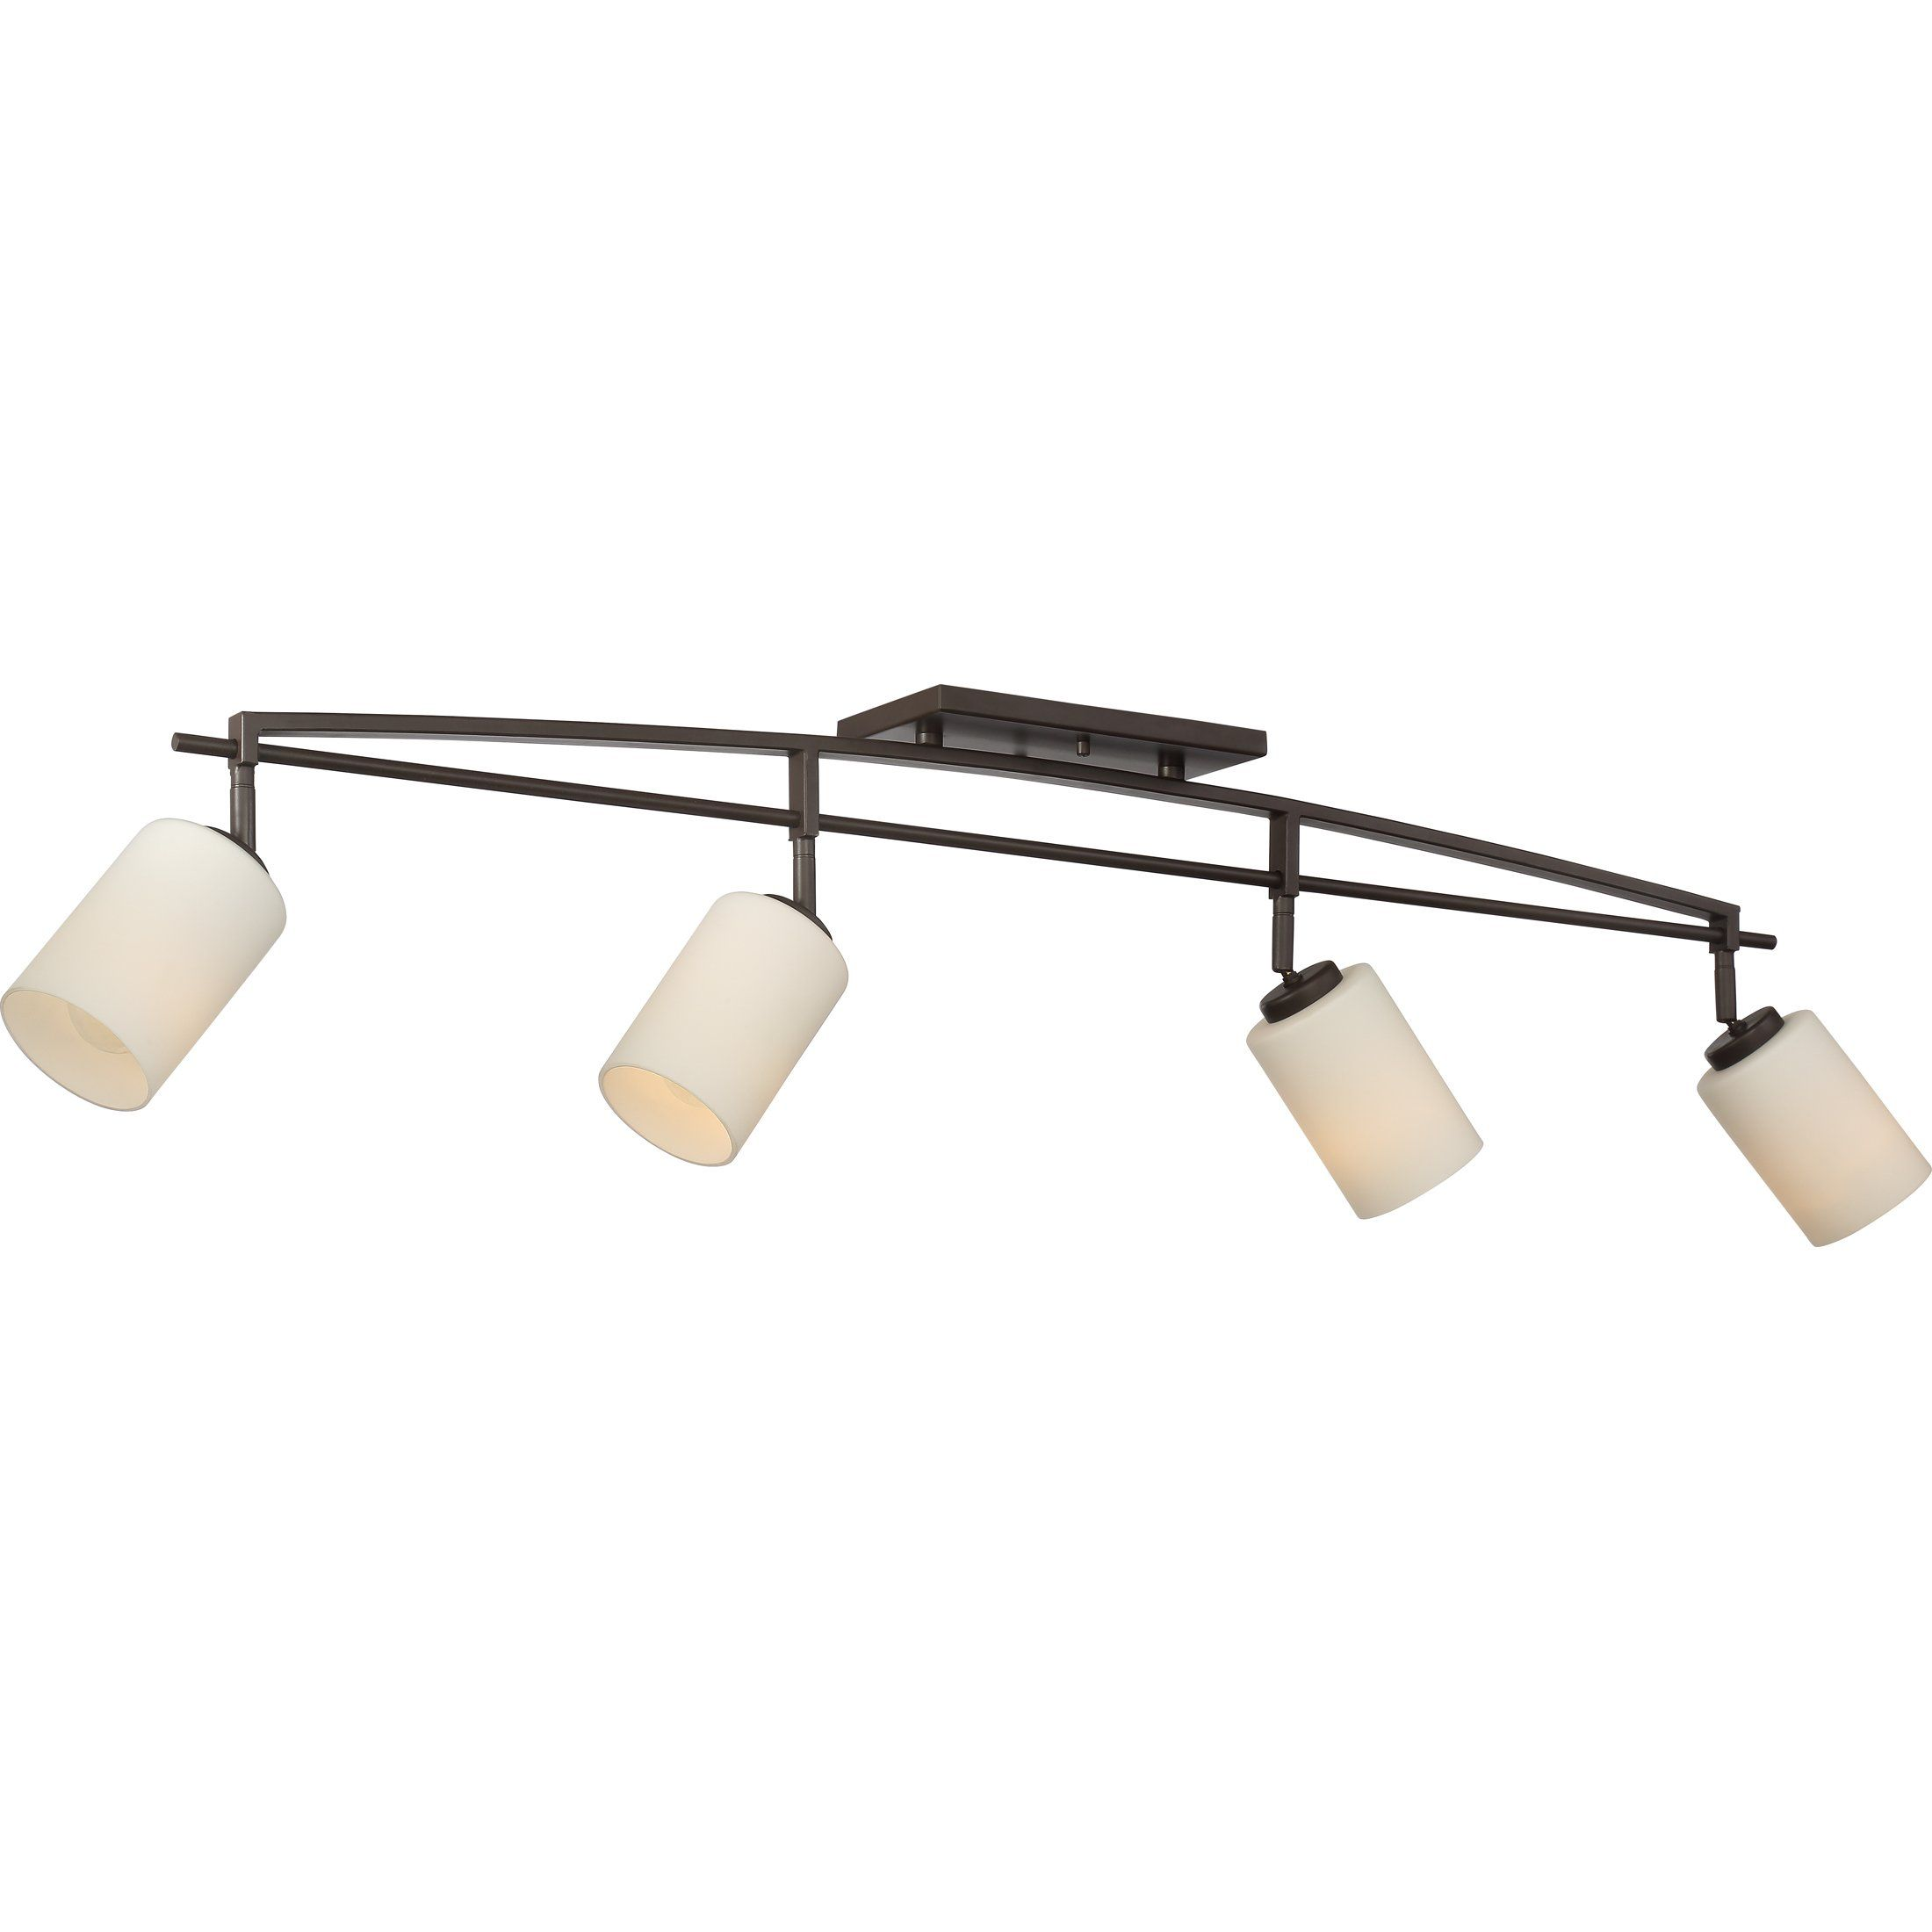 Quoizel Taylor Bronze Fixed Track Light